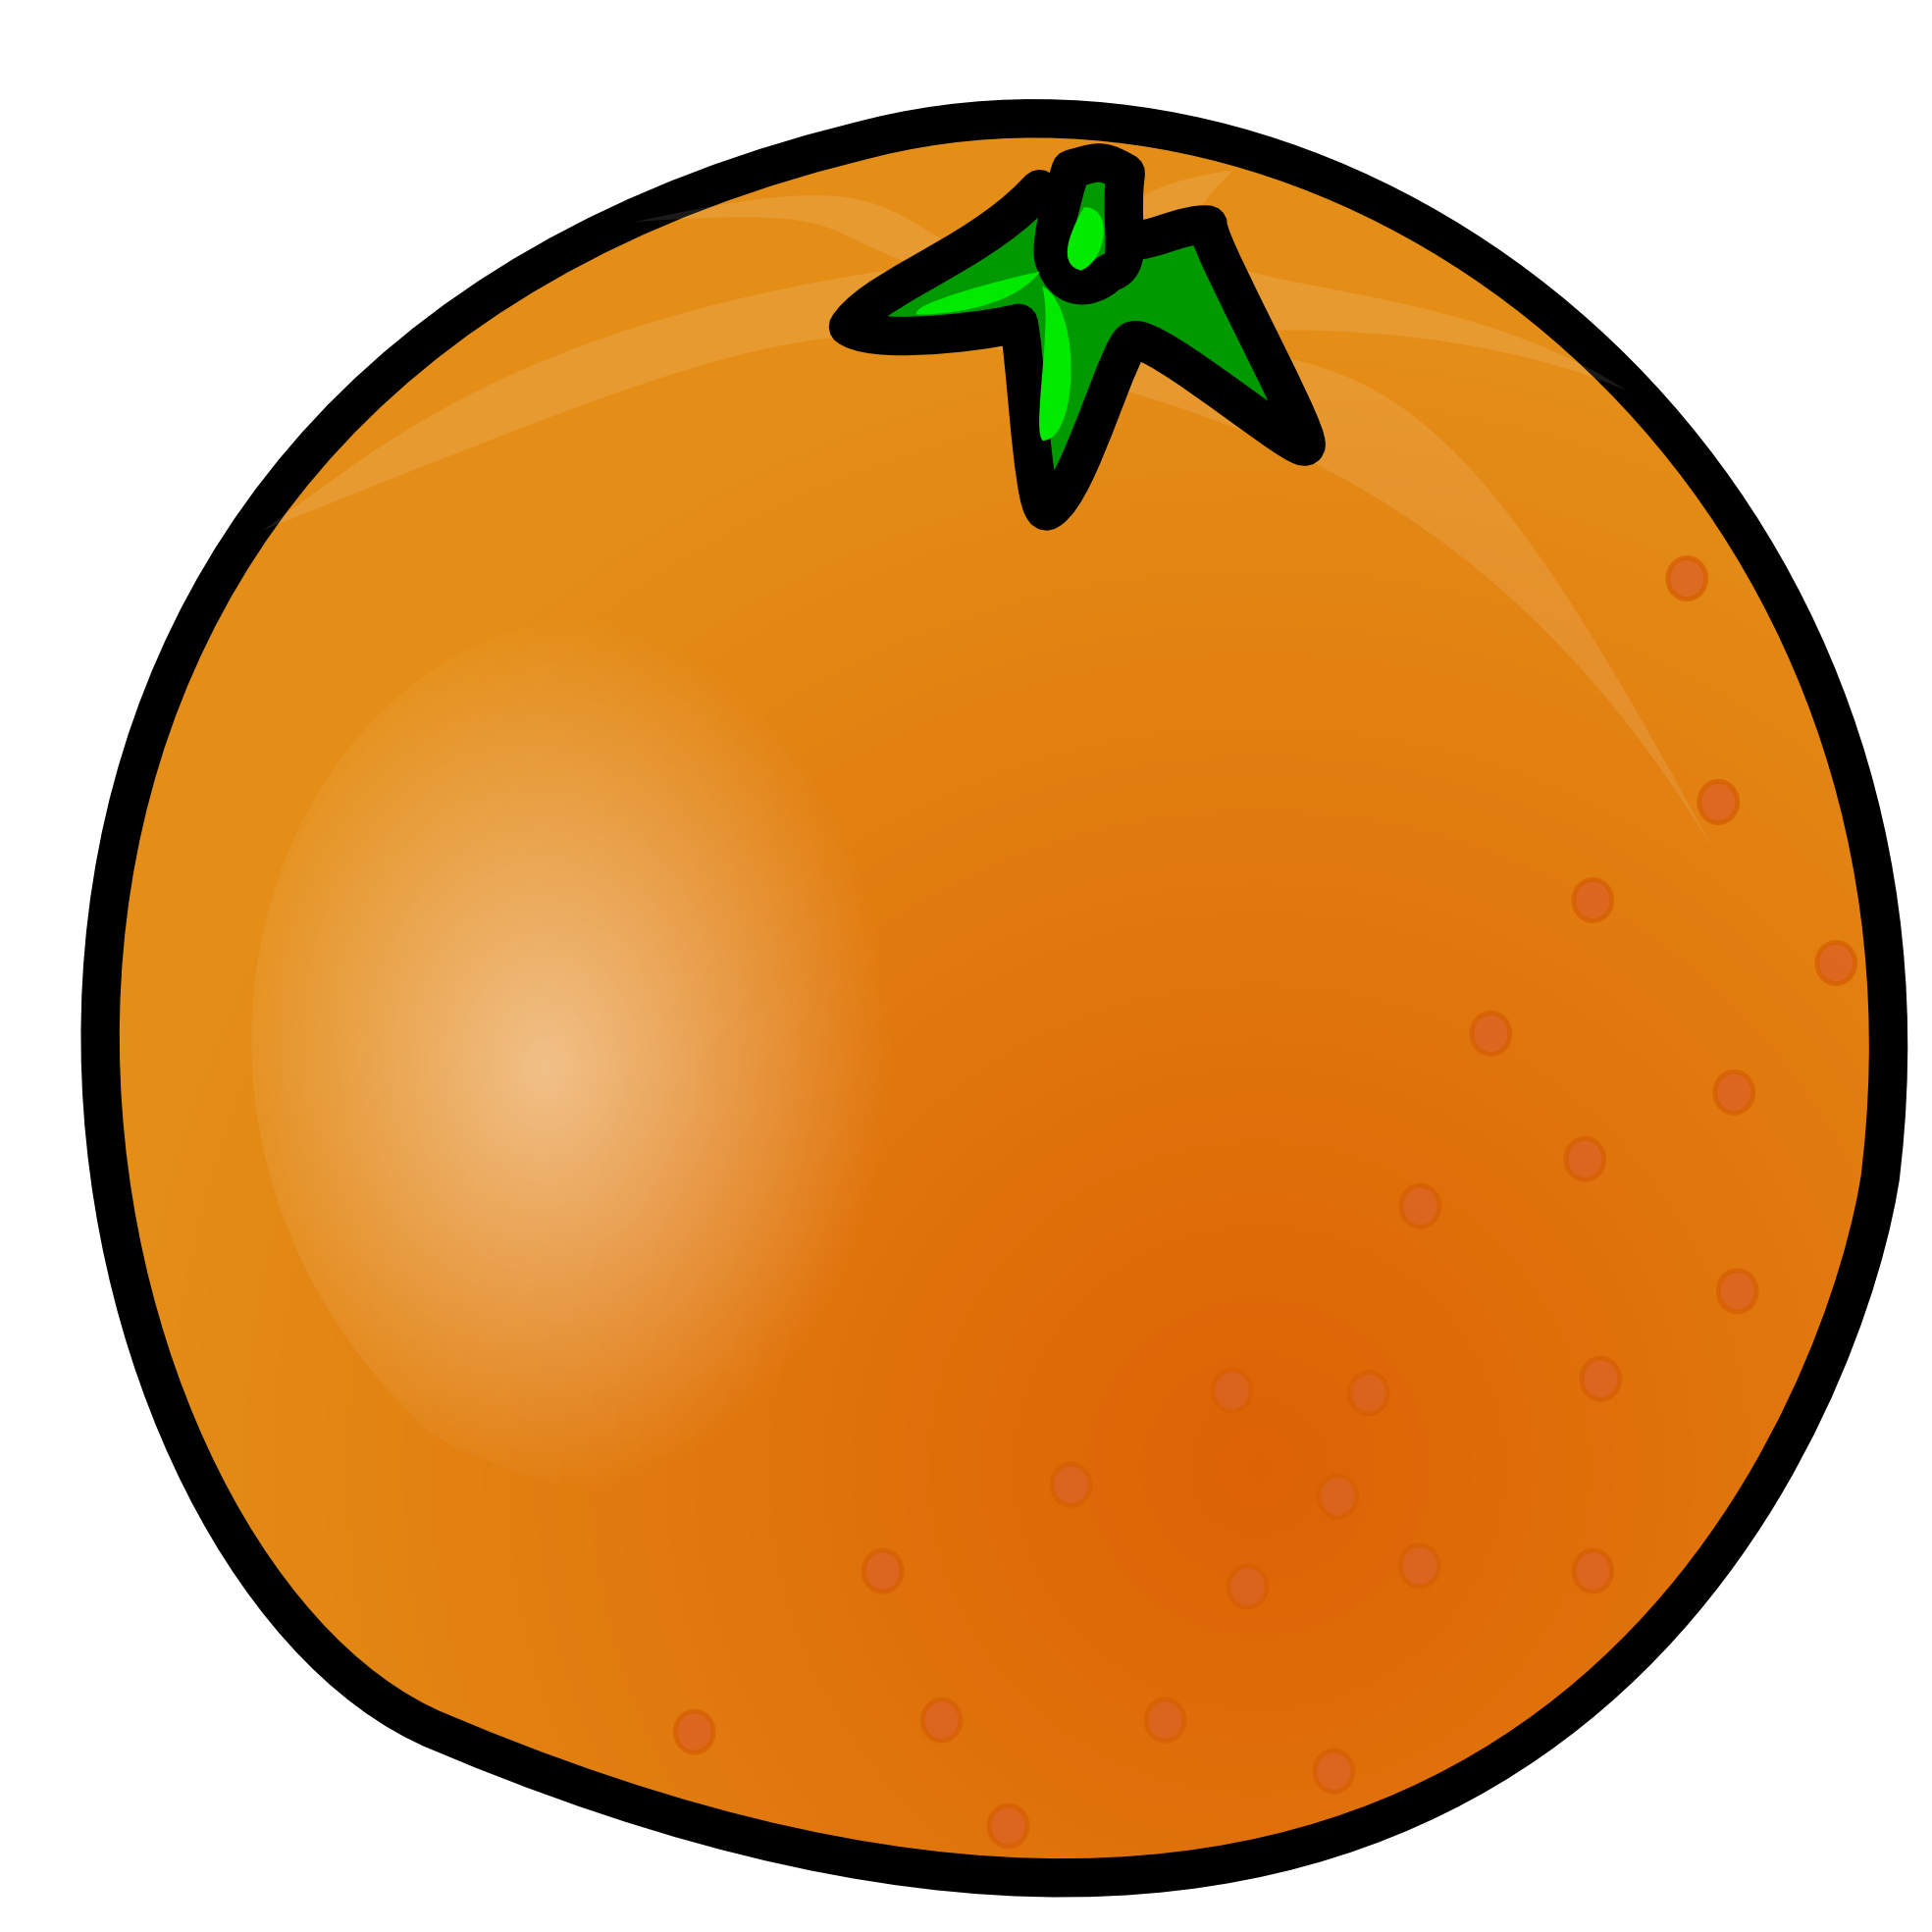 Orange Clip Art Free